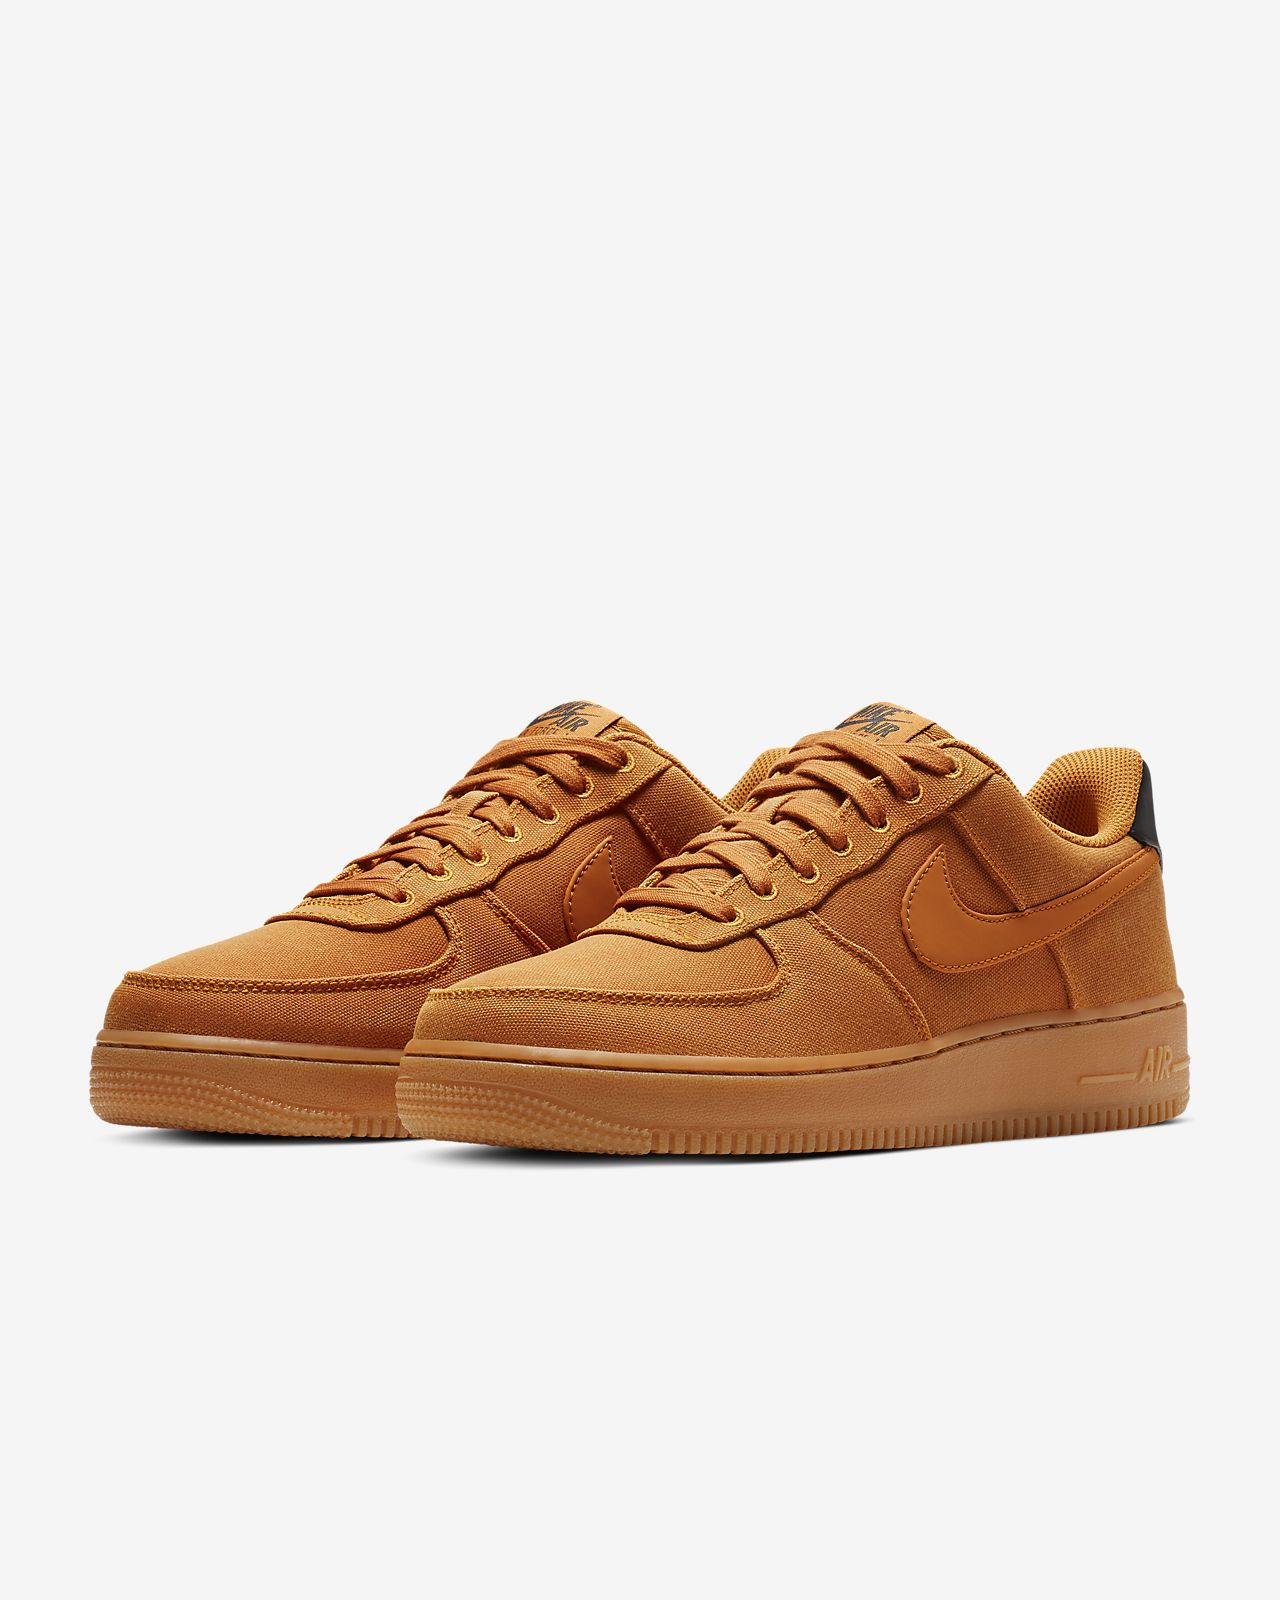 Chaussure Nike Air Force 1 '07 LV8 Style pour Homme